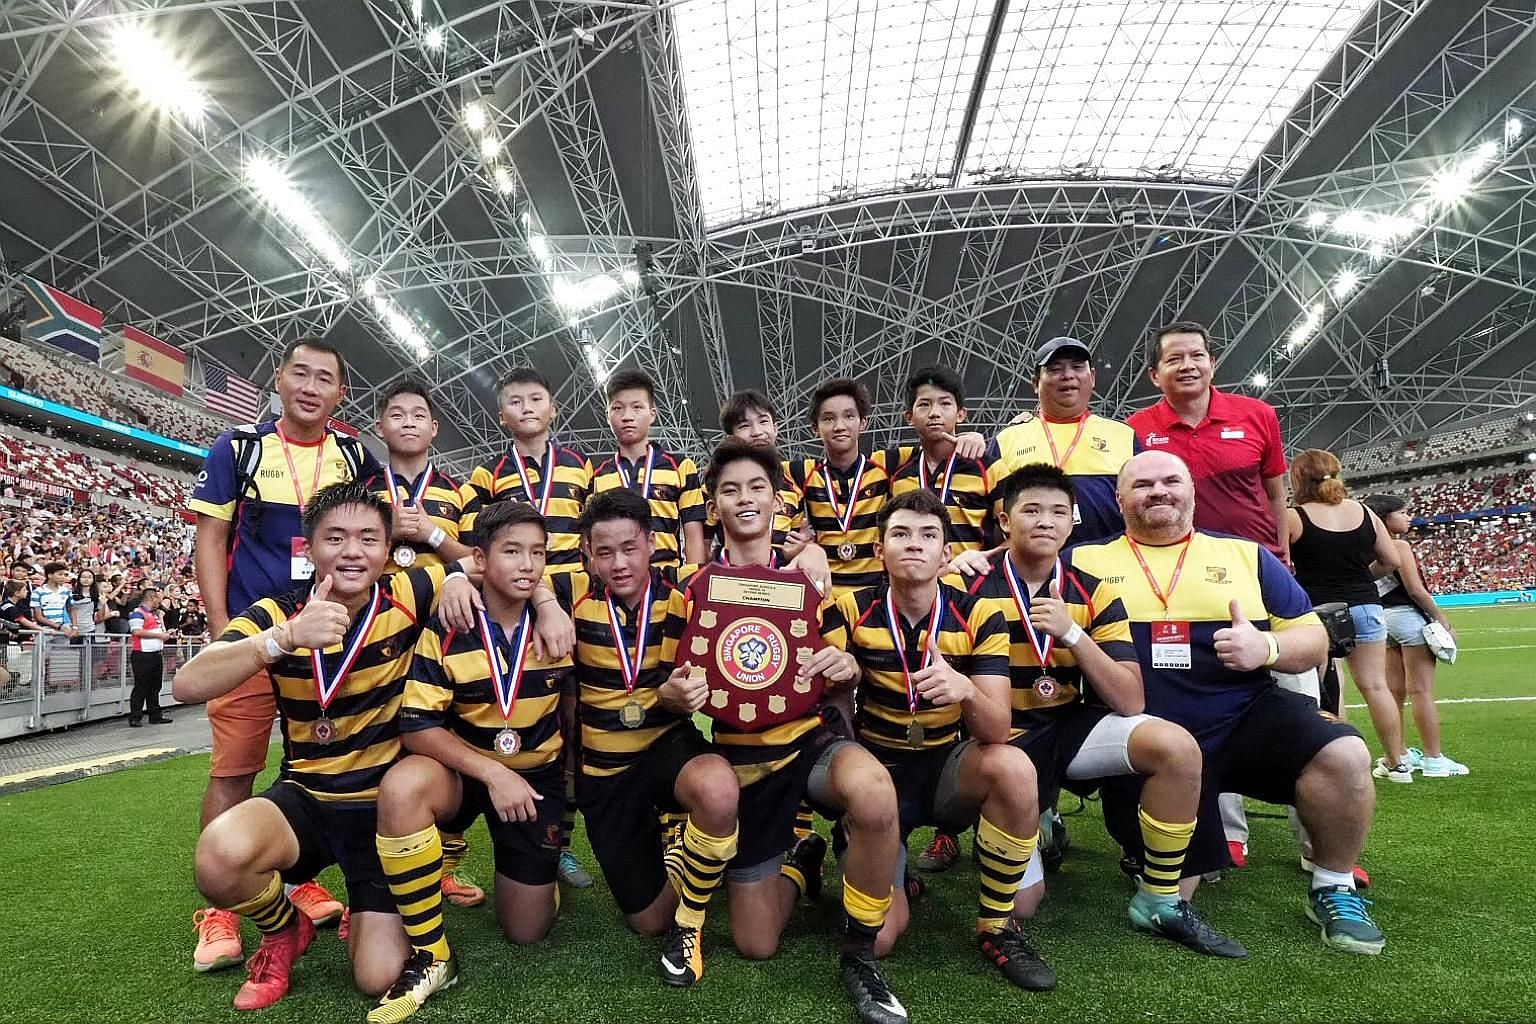 ACS(I) captain Ng Zu Jie (with shield) led his team to victory over St Andrew's in the U-14 Singapore Schools Sevens Series.